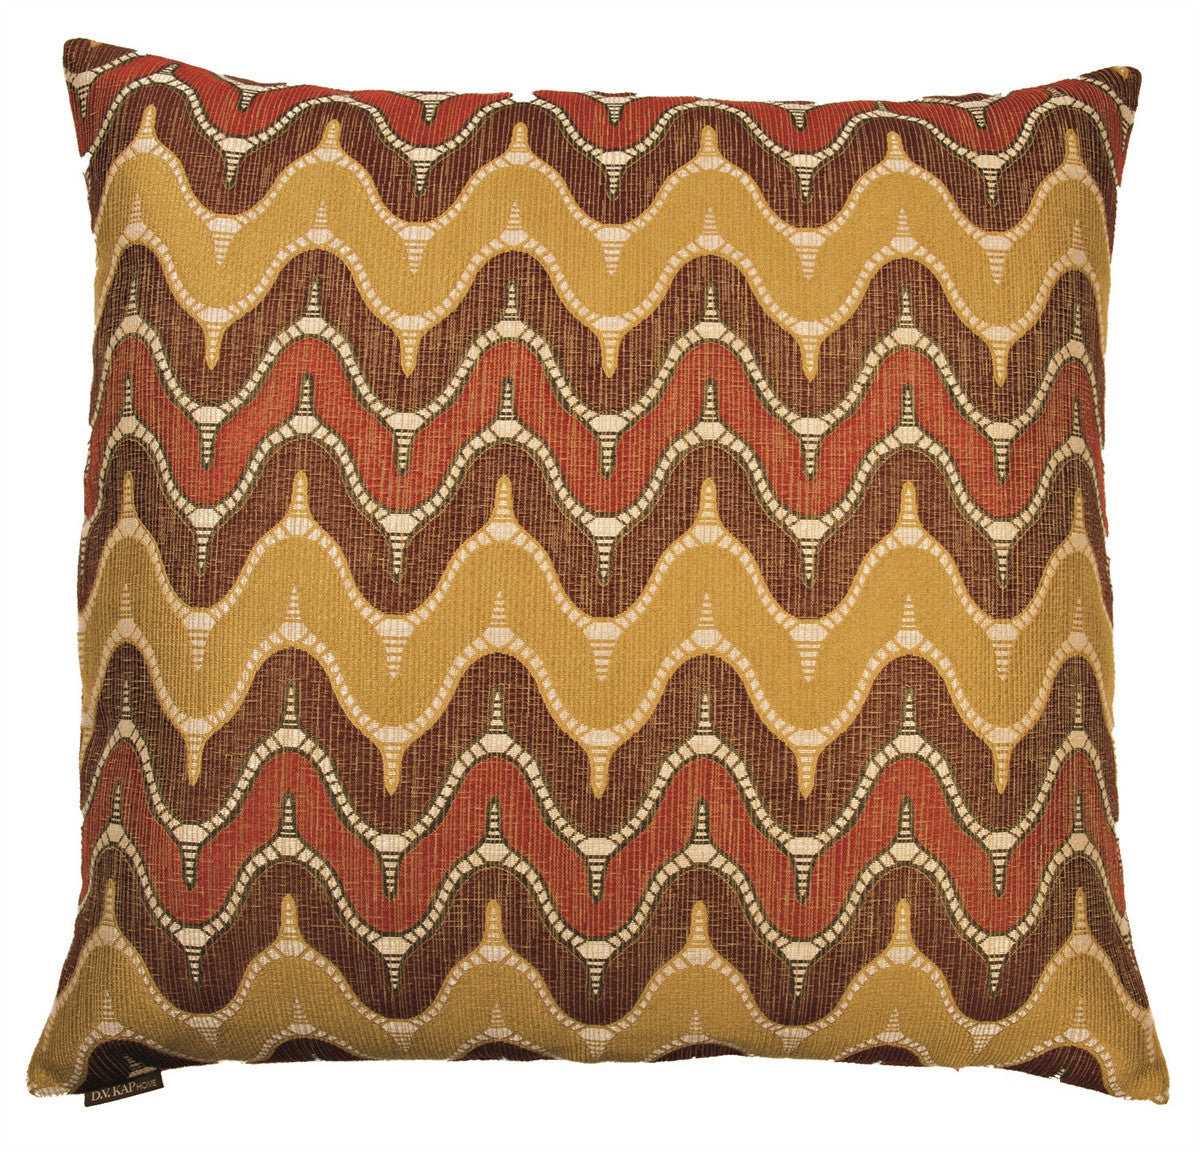 DV Kap Home - Impressive Toss Pillow